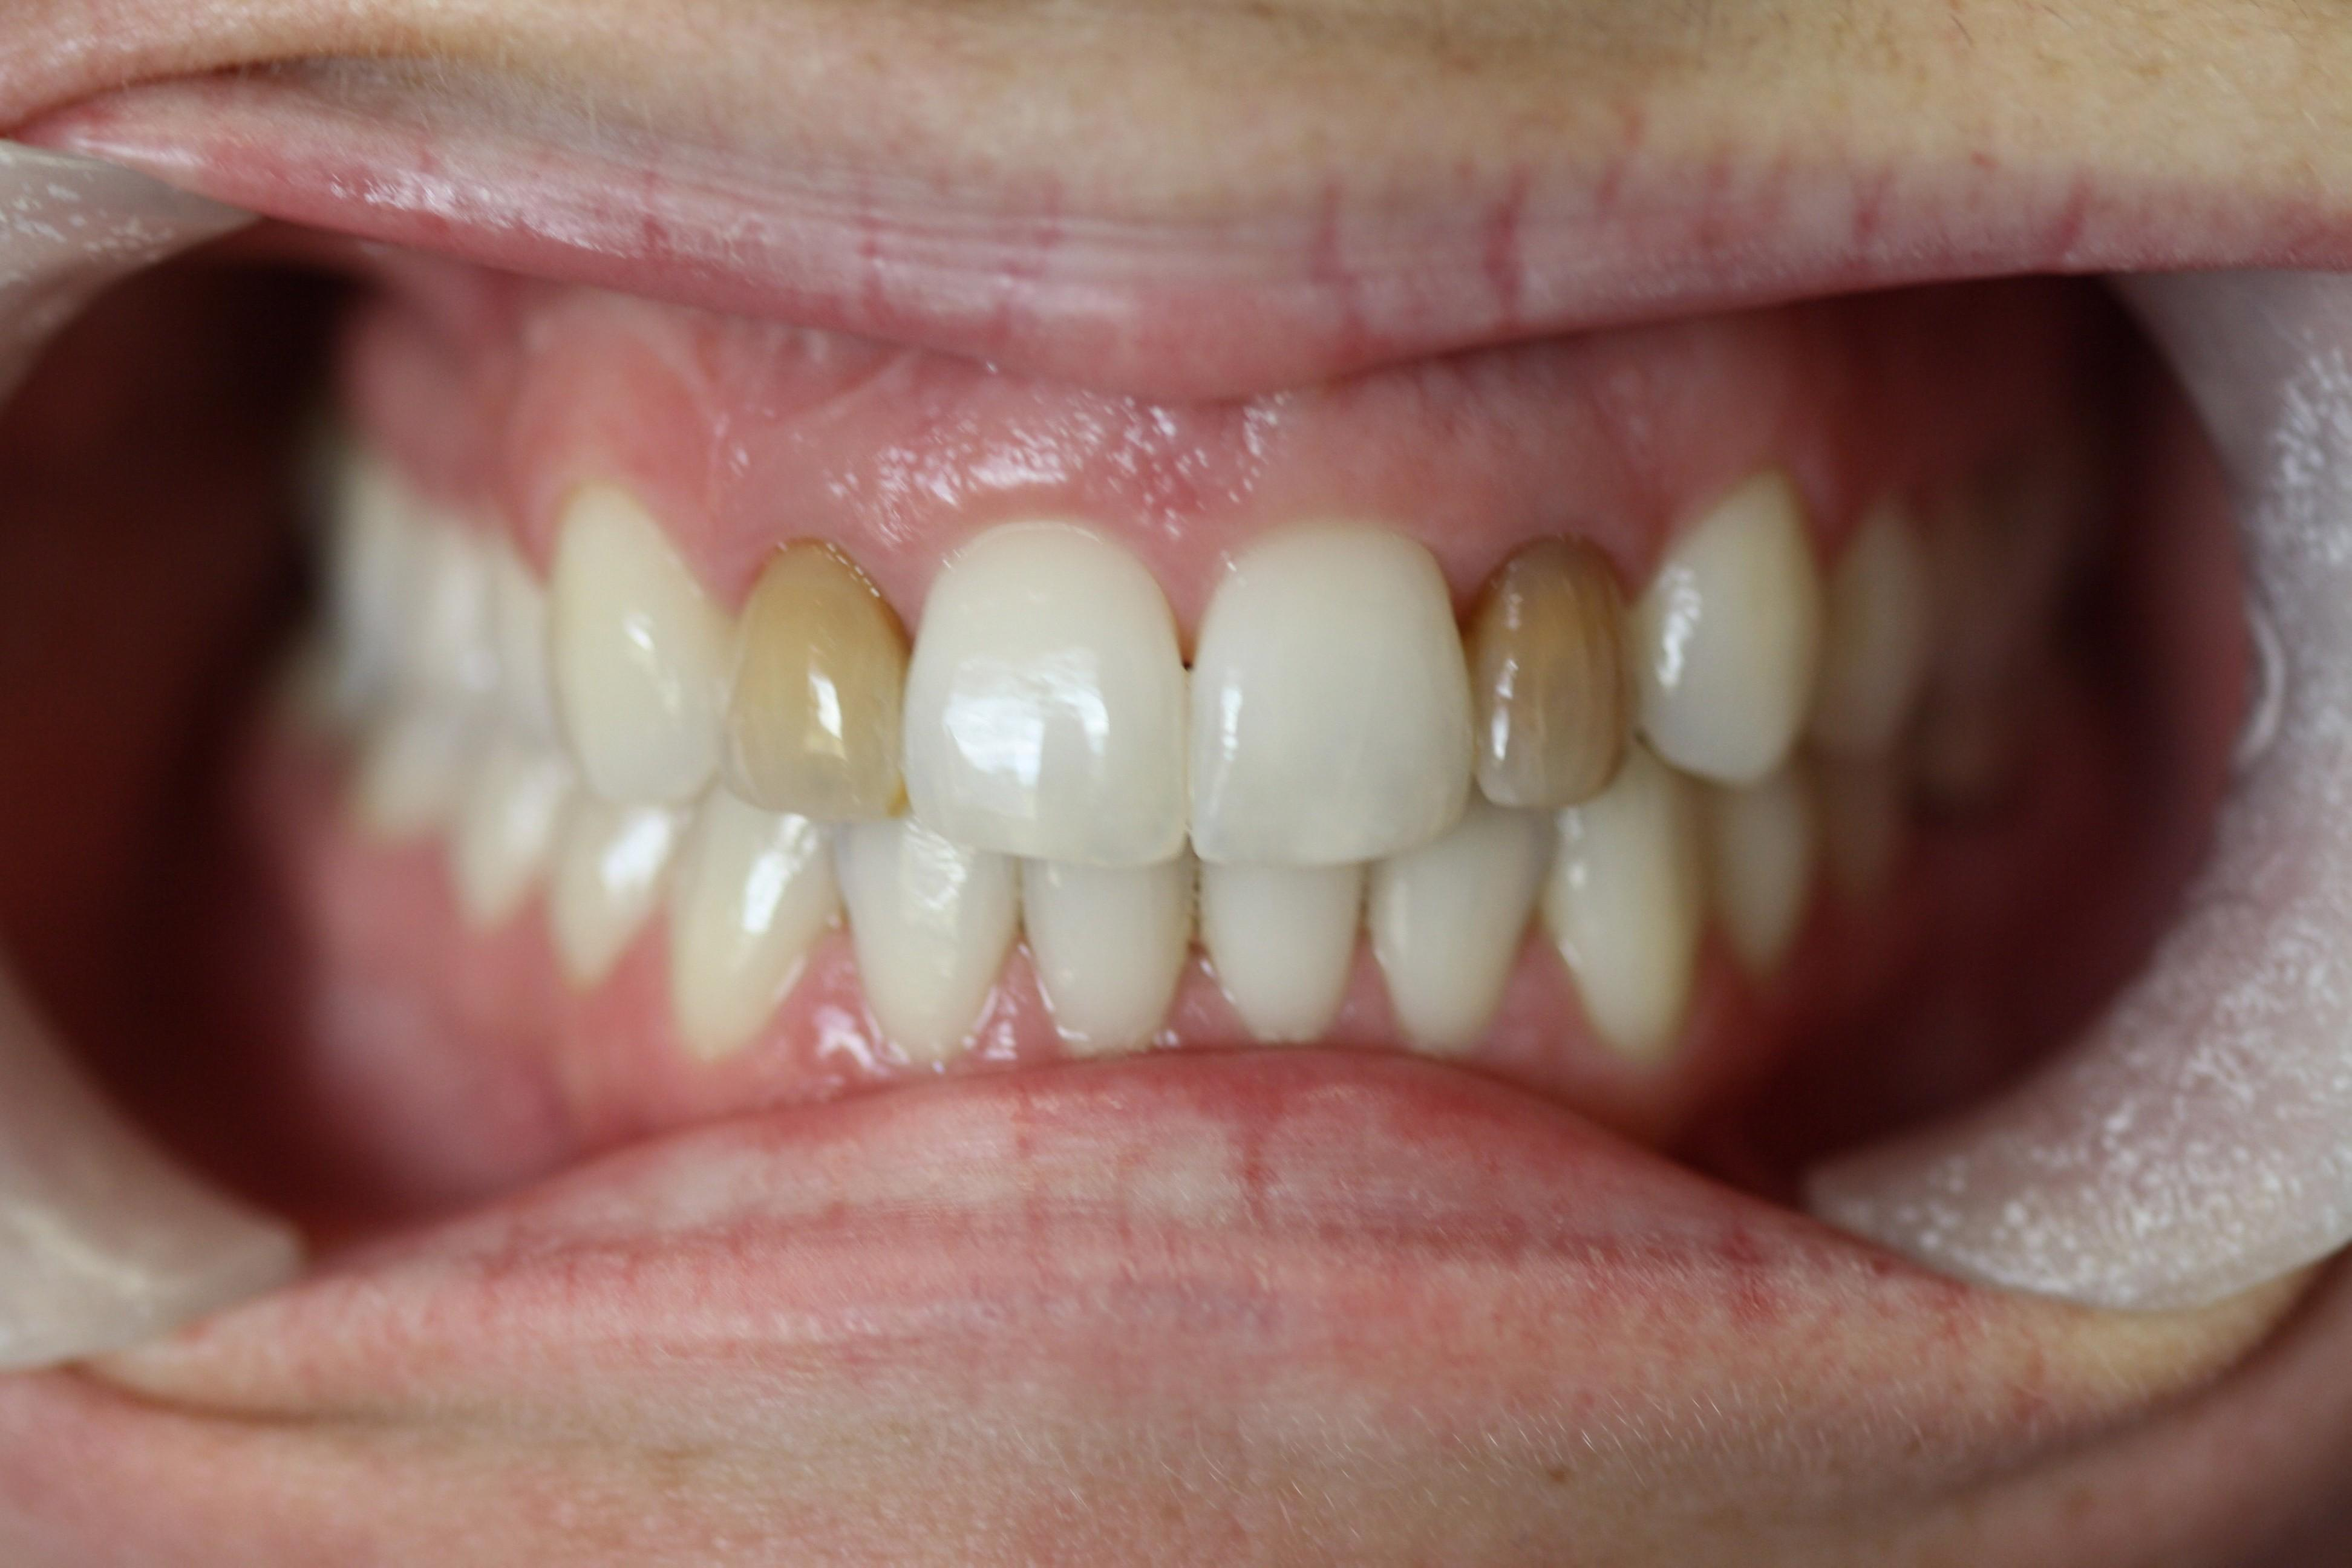 Severe Tooth Discoloration from Root Canal Therapy